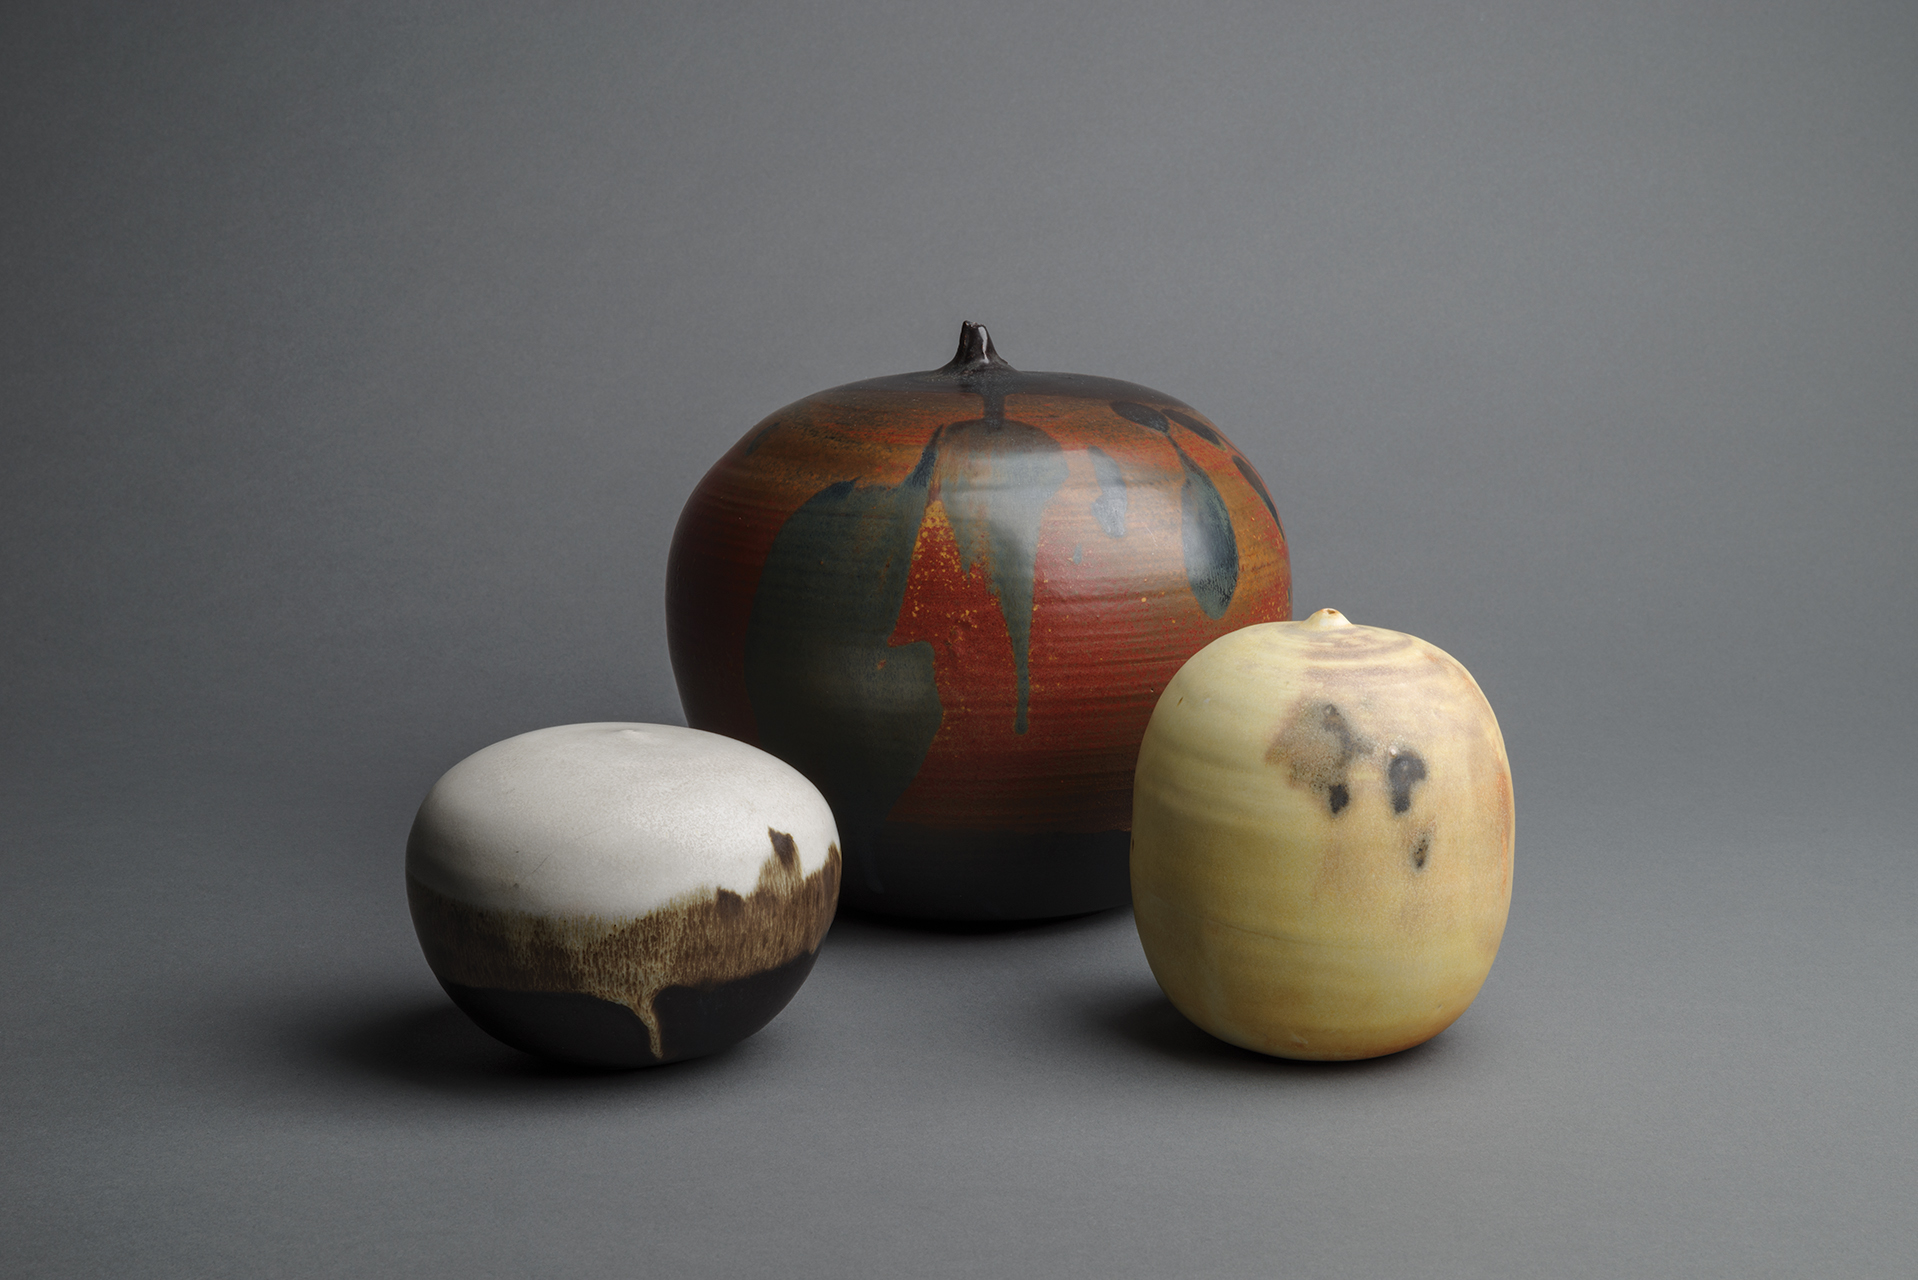 Painting on clay exhibit set to open at suzanne h arnold art gallery